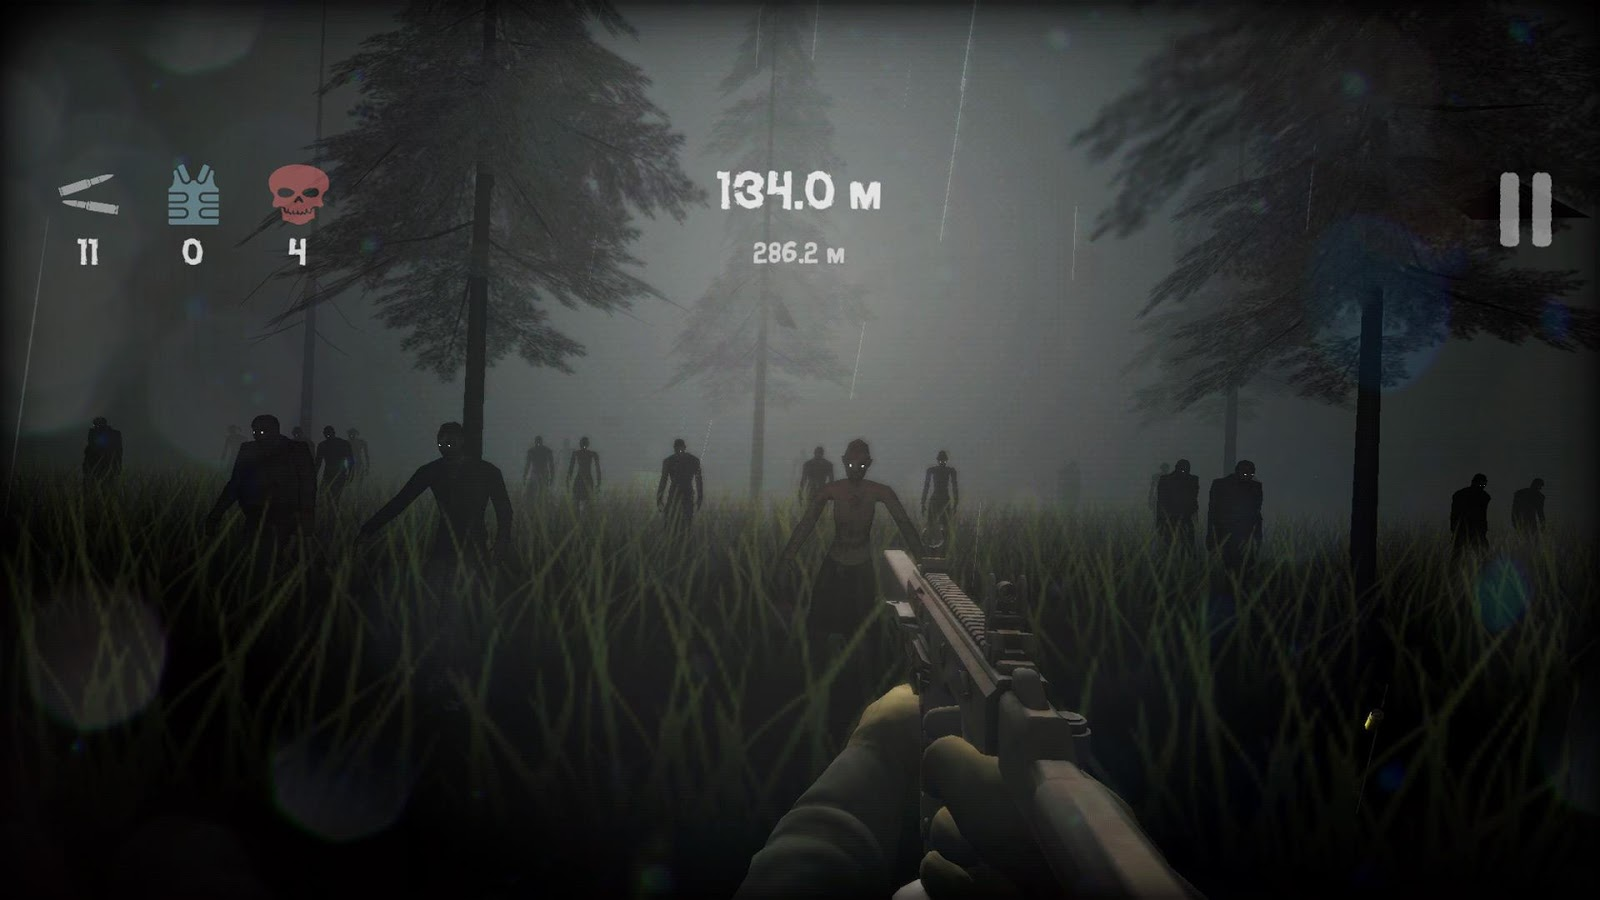 D.E.A.D. Screenshot 1